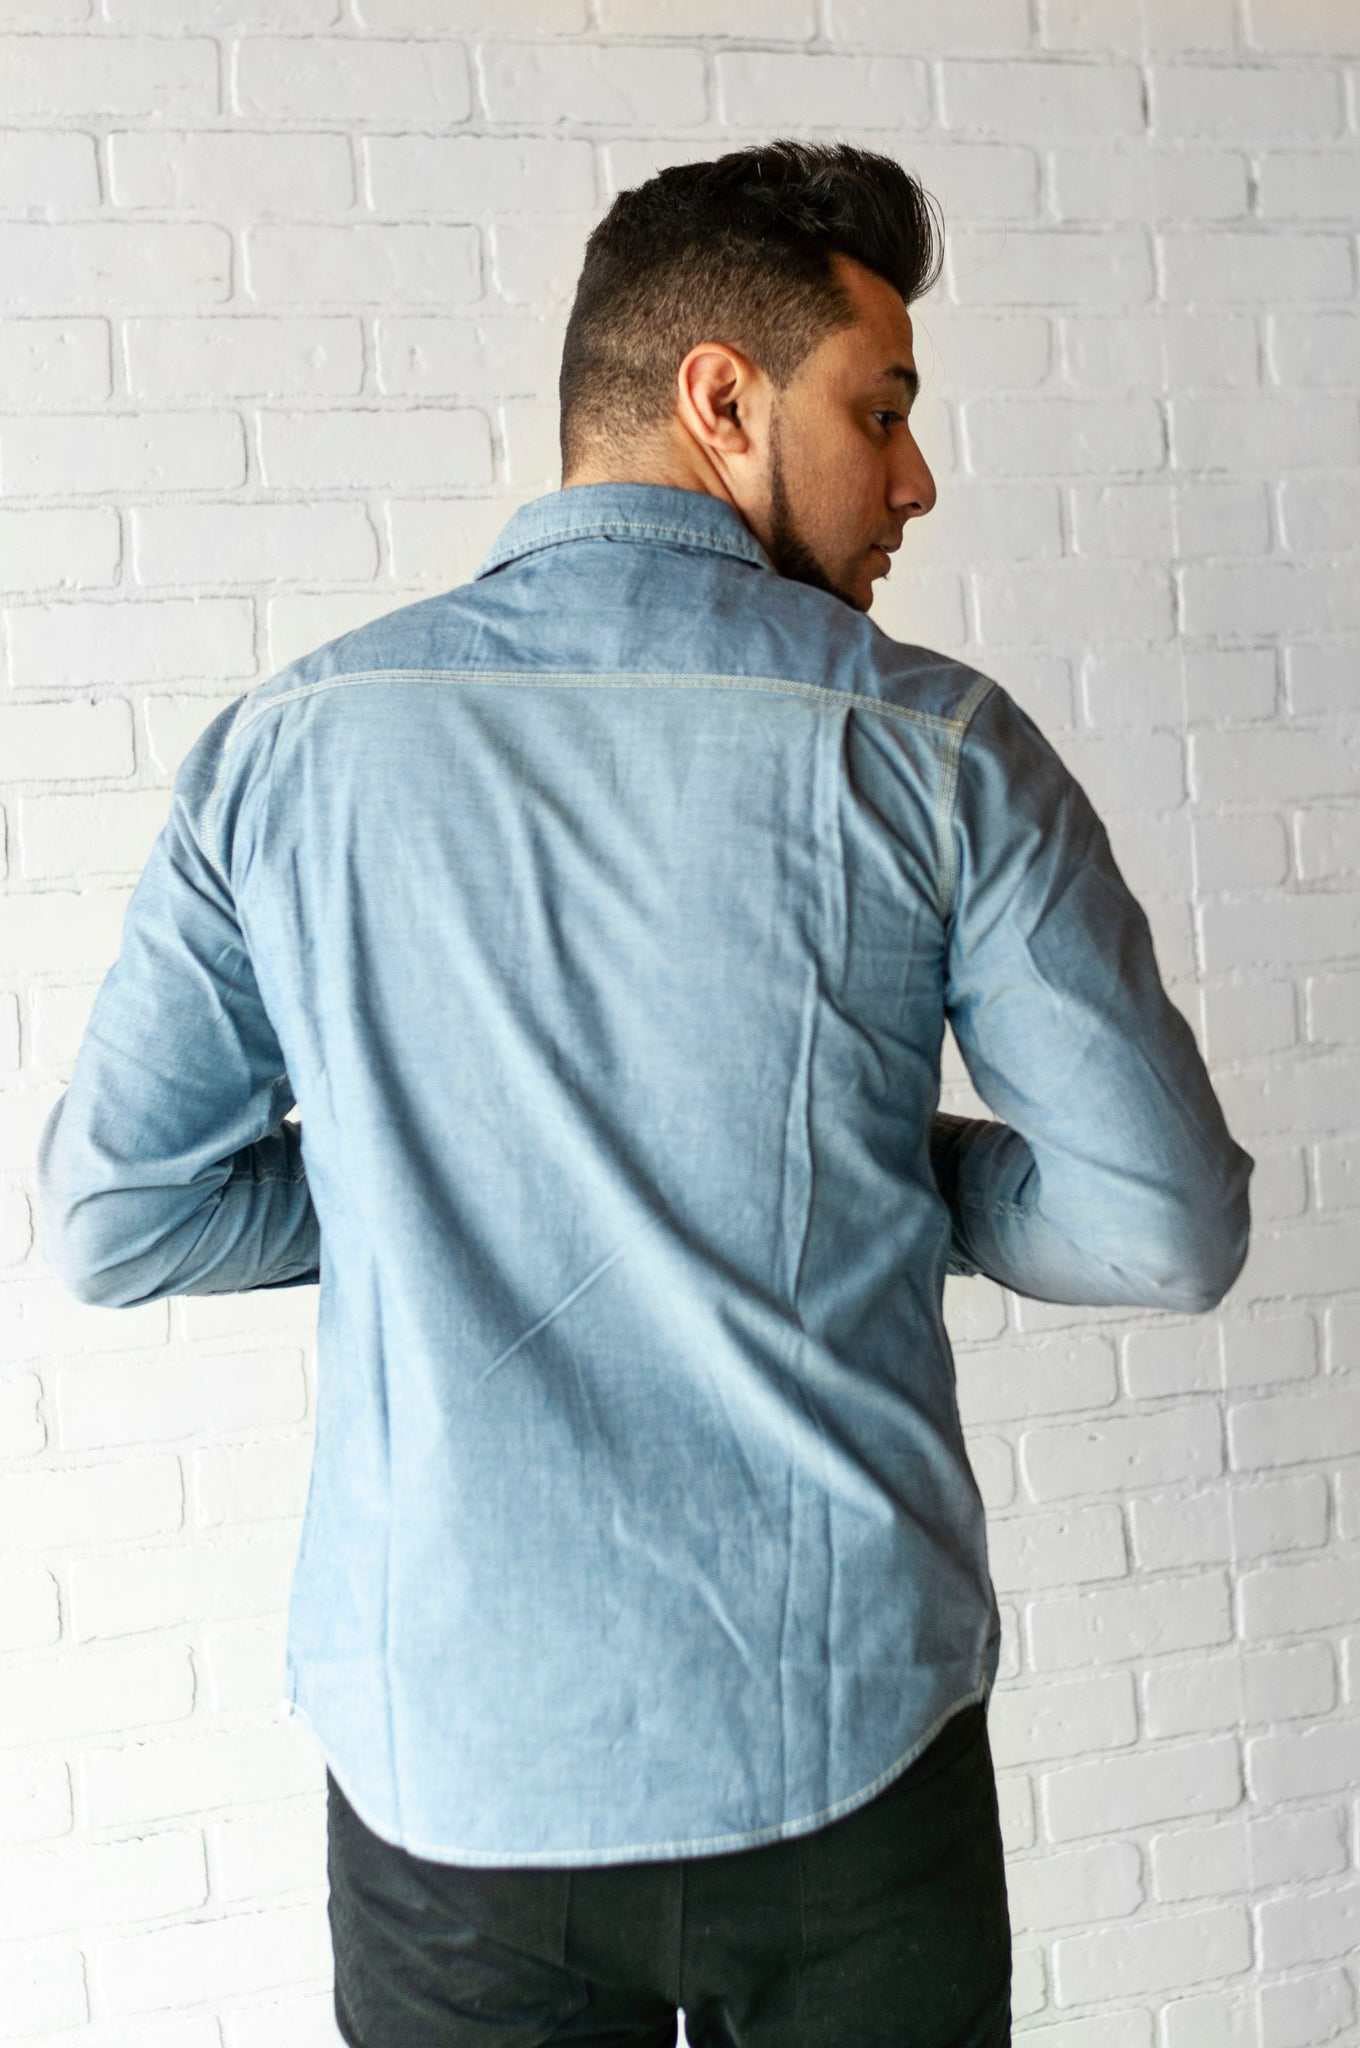 Put The Record On | Men's button up in denim